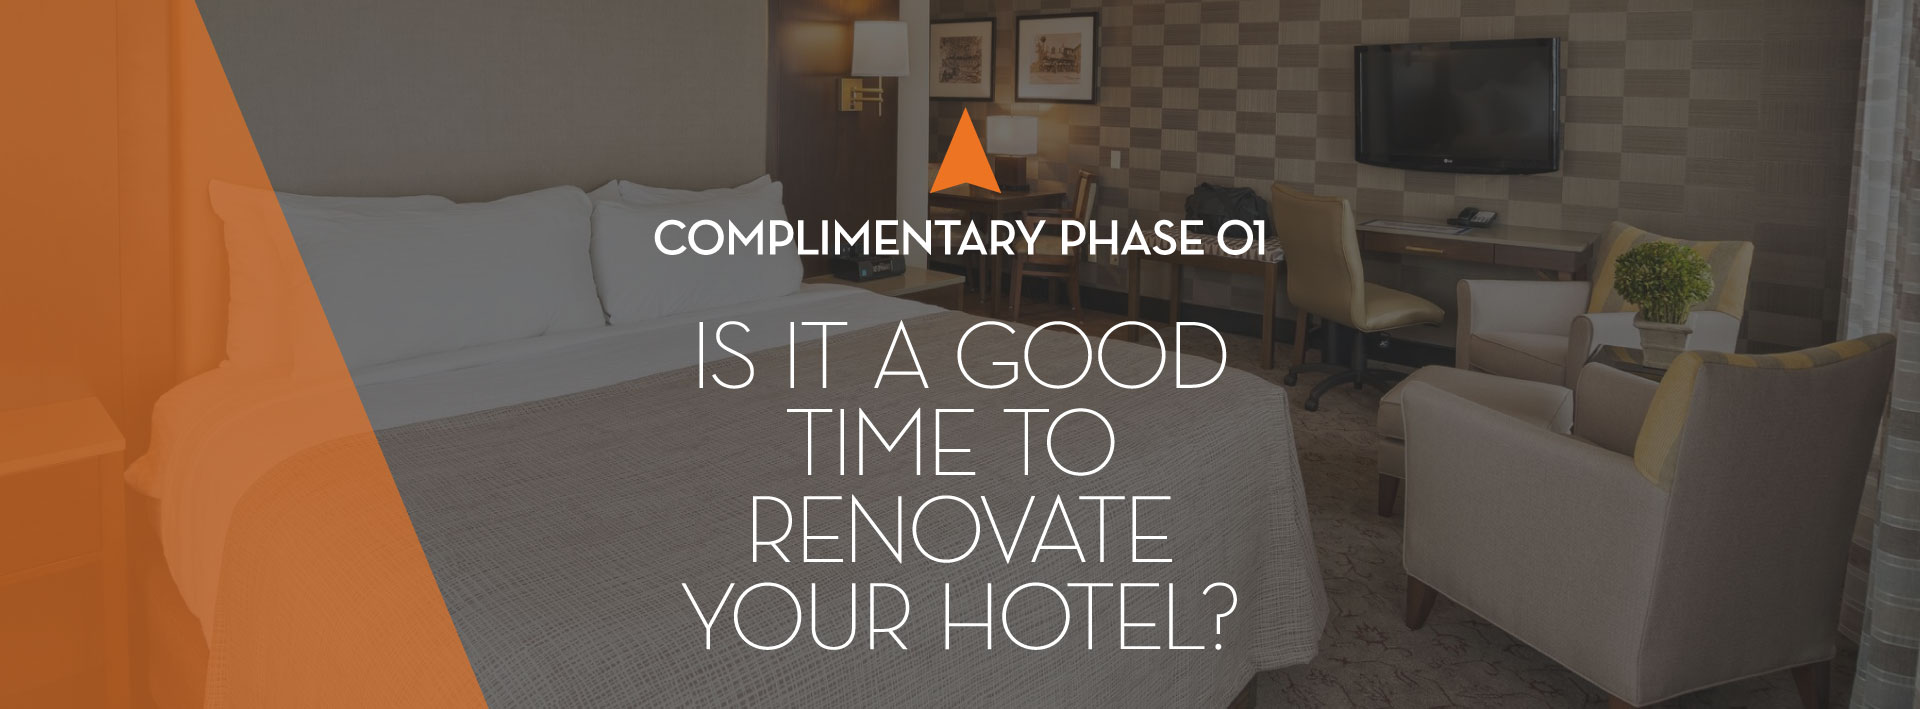 Complimentary Phase 01